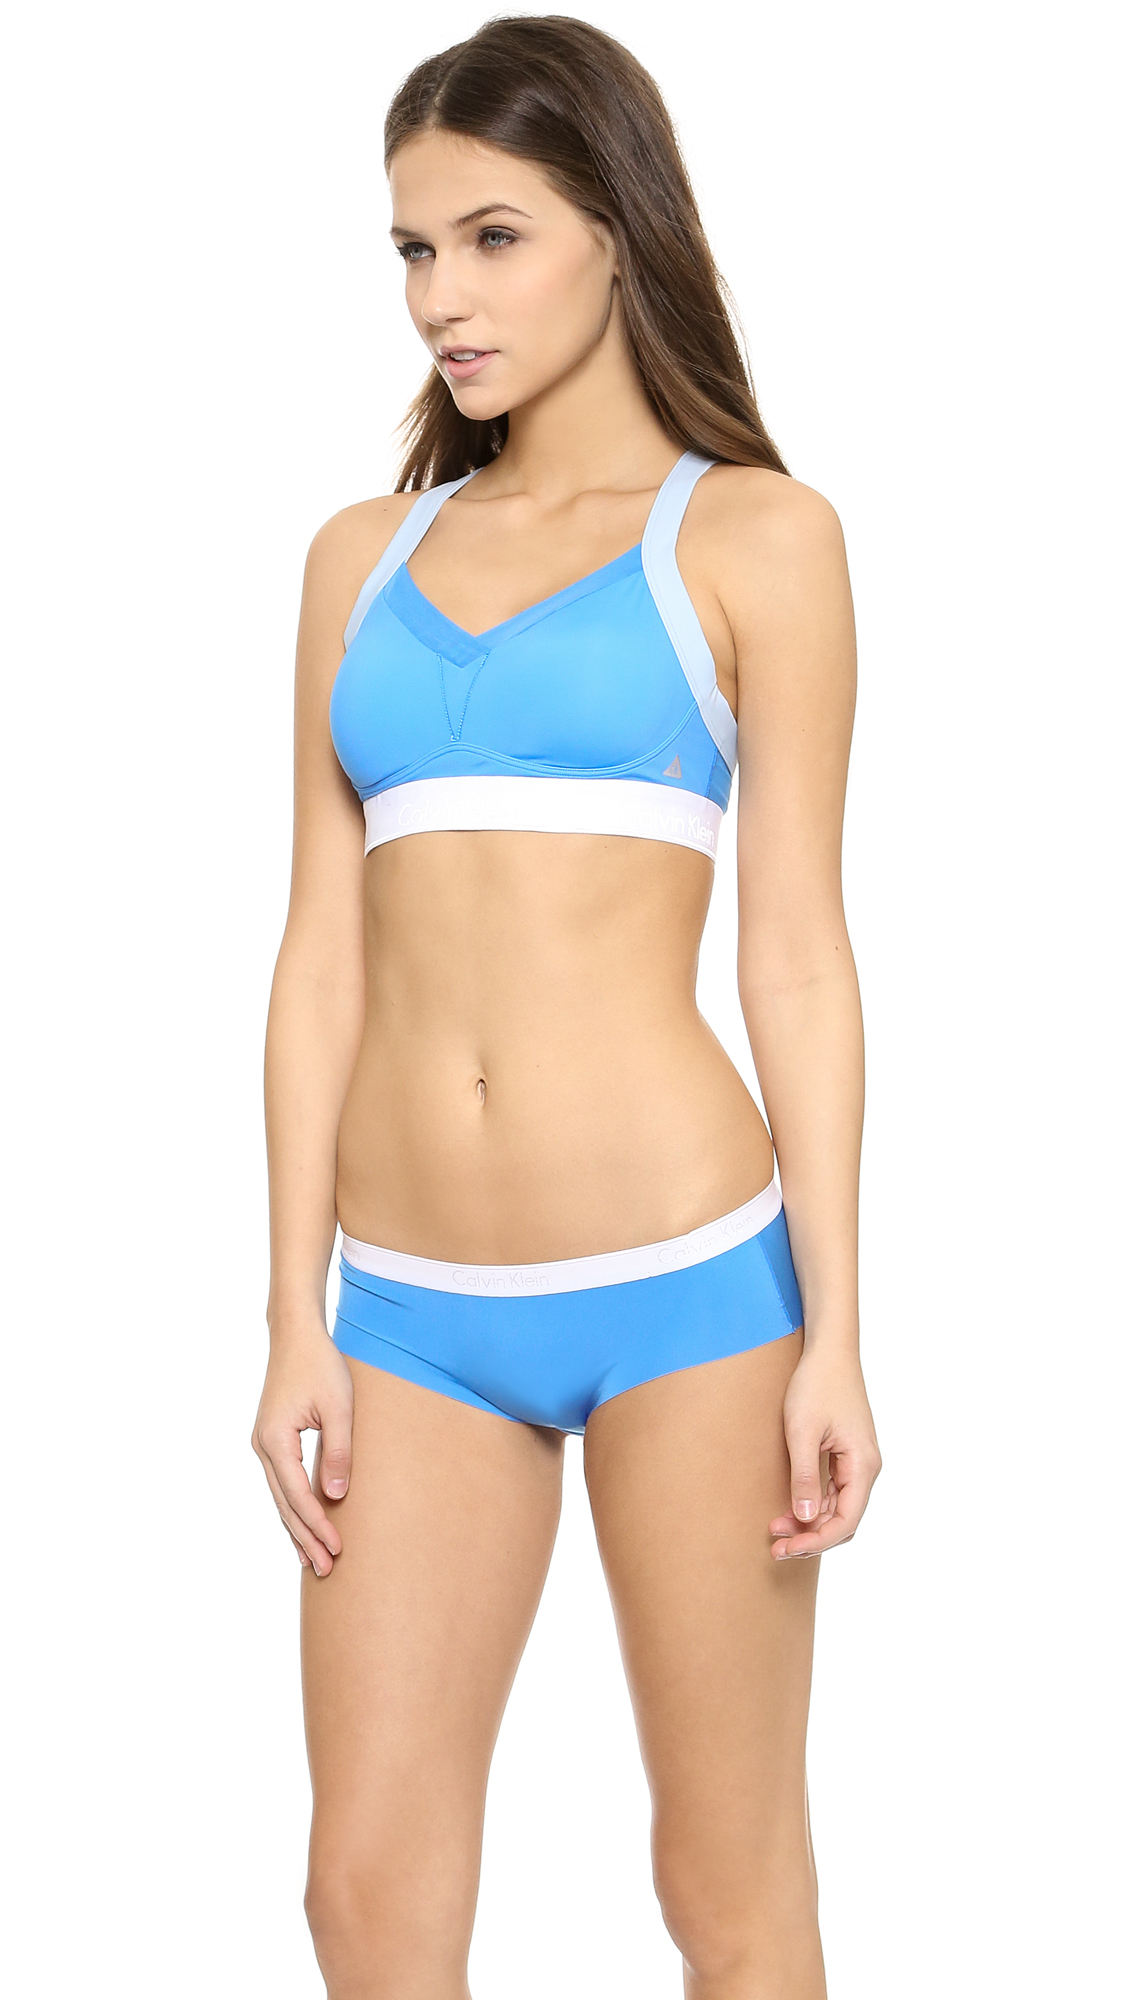 2331b8035d115 Lyst - Calvin Klein Flex Motion High Impact Bra - Aquarium Colorblock in  Blue